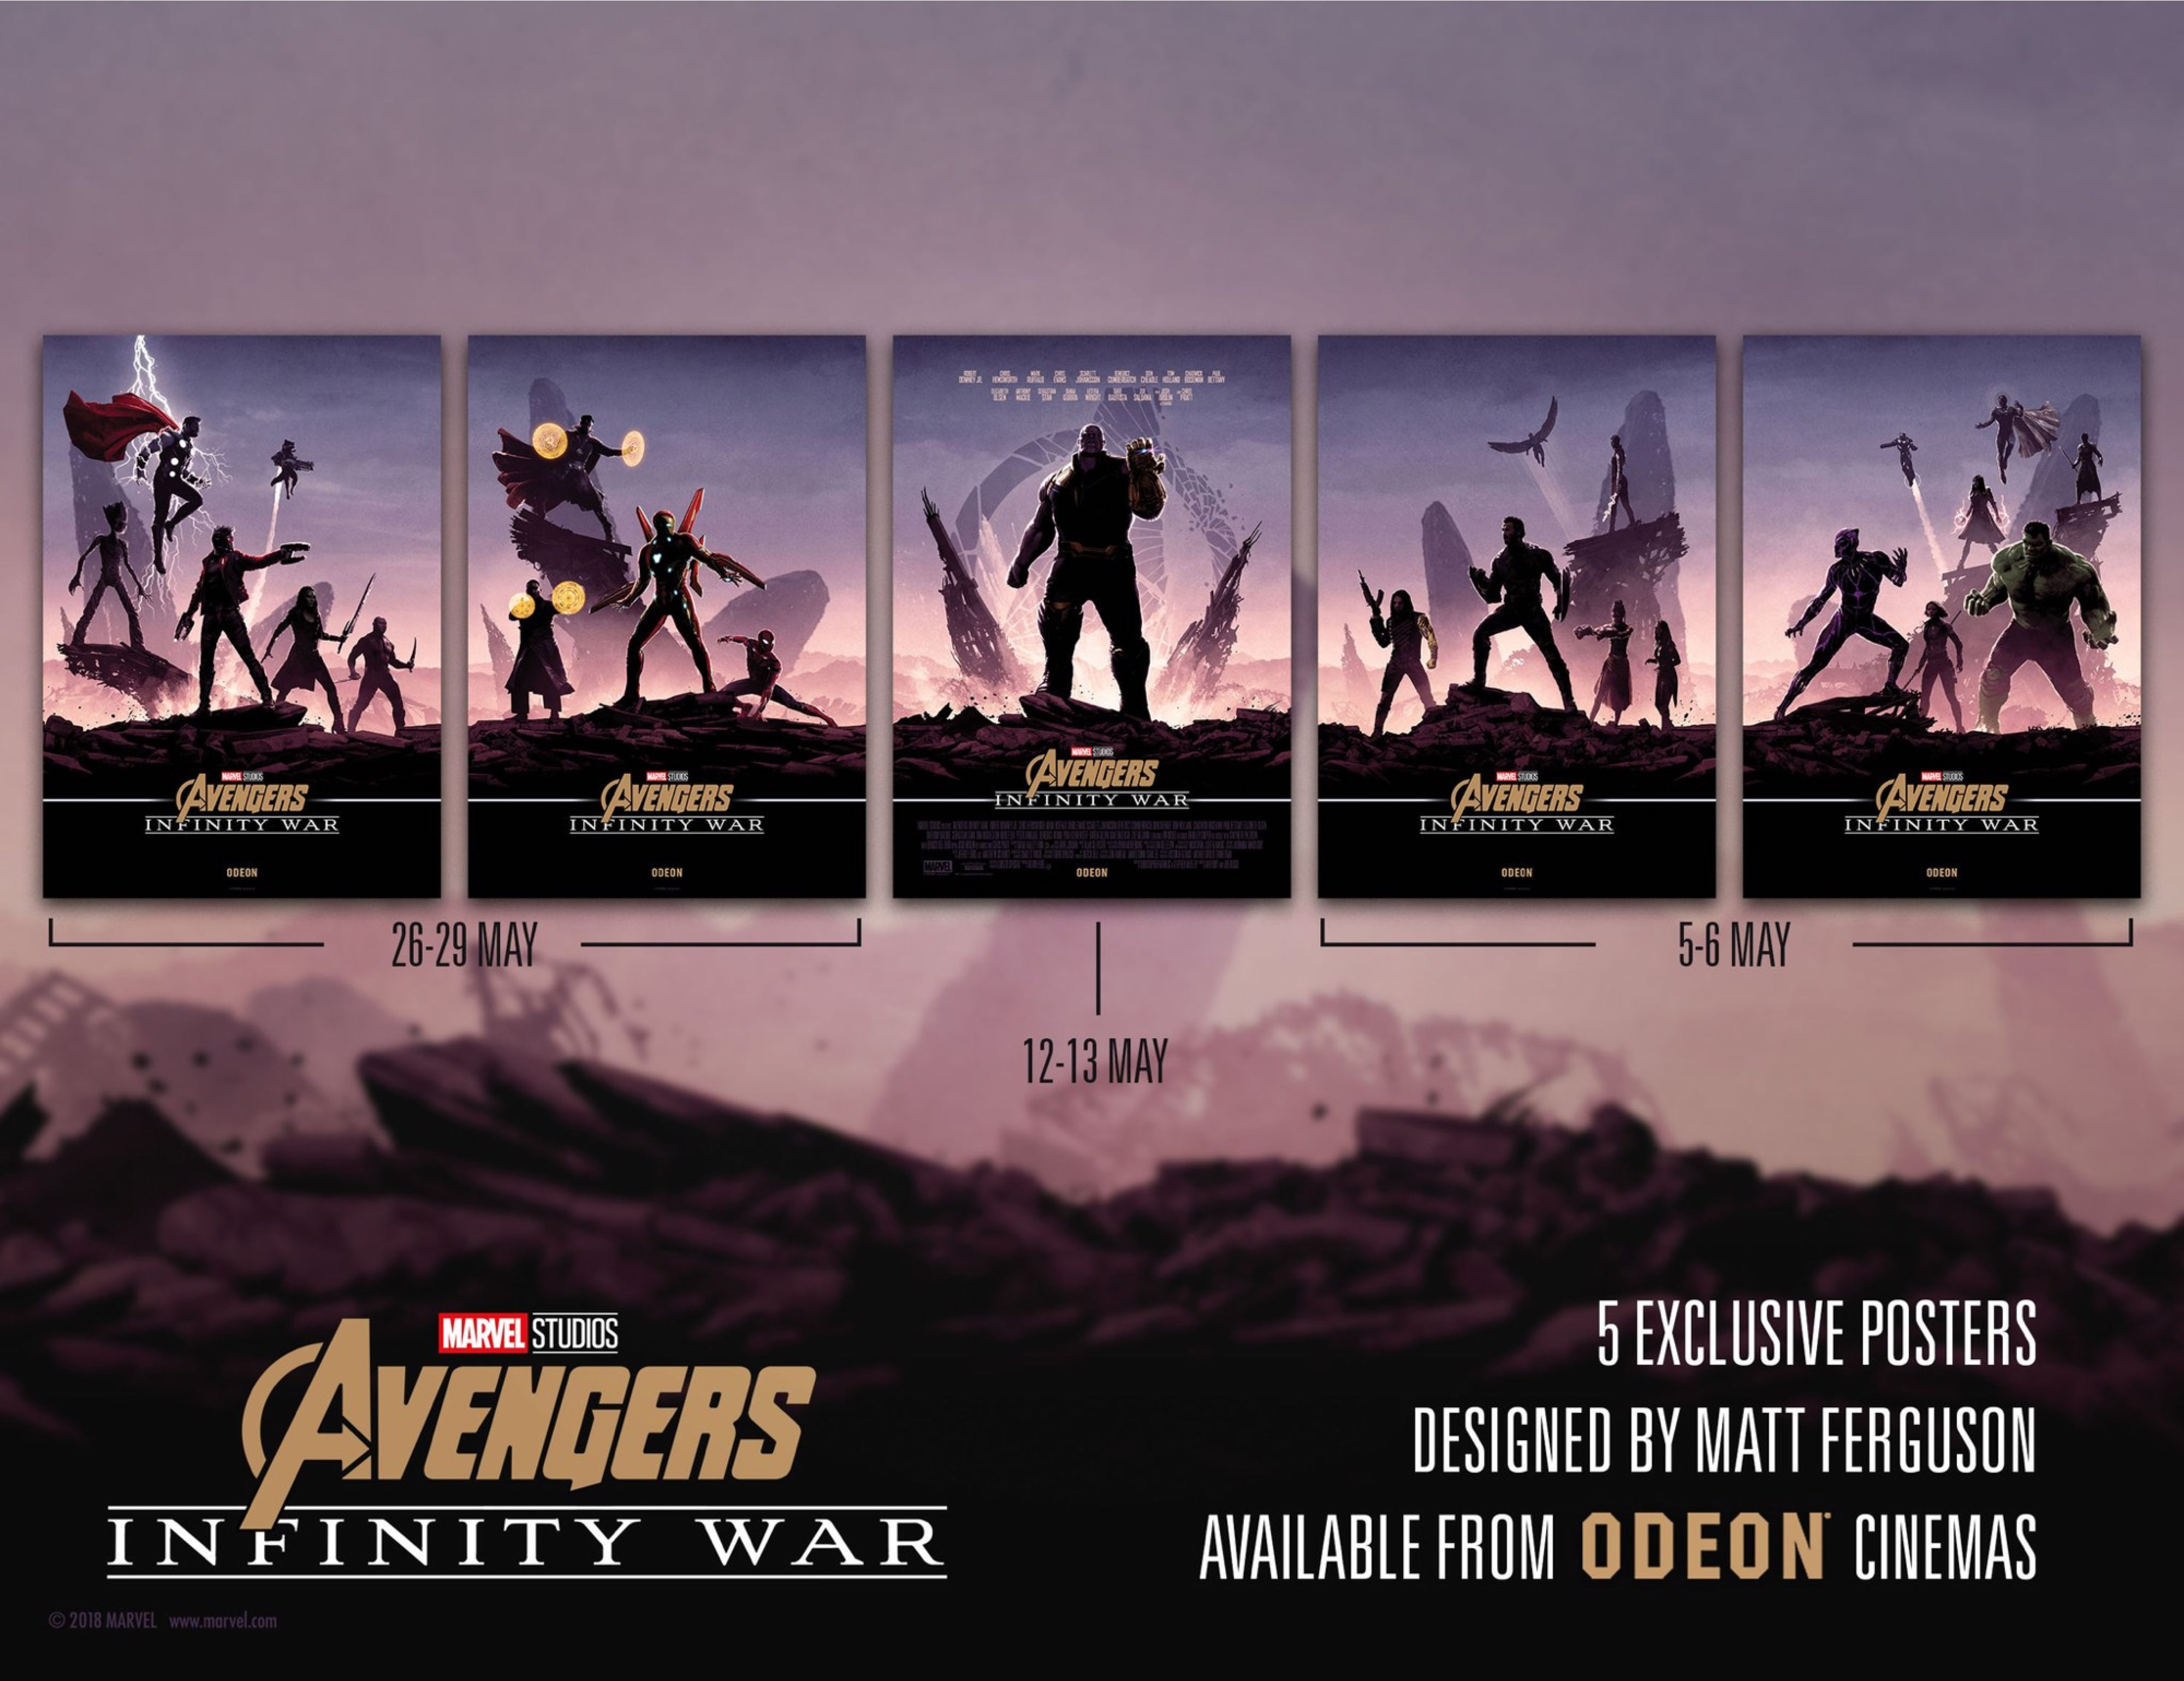 Watch Marvel's Avengers surprise fans with collector's items from Infinity War